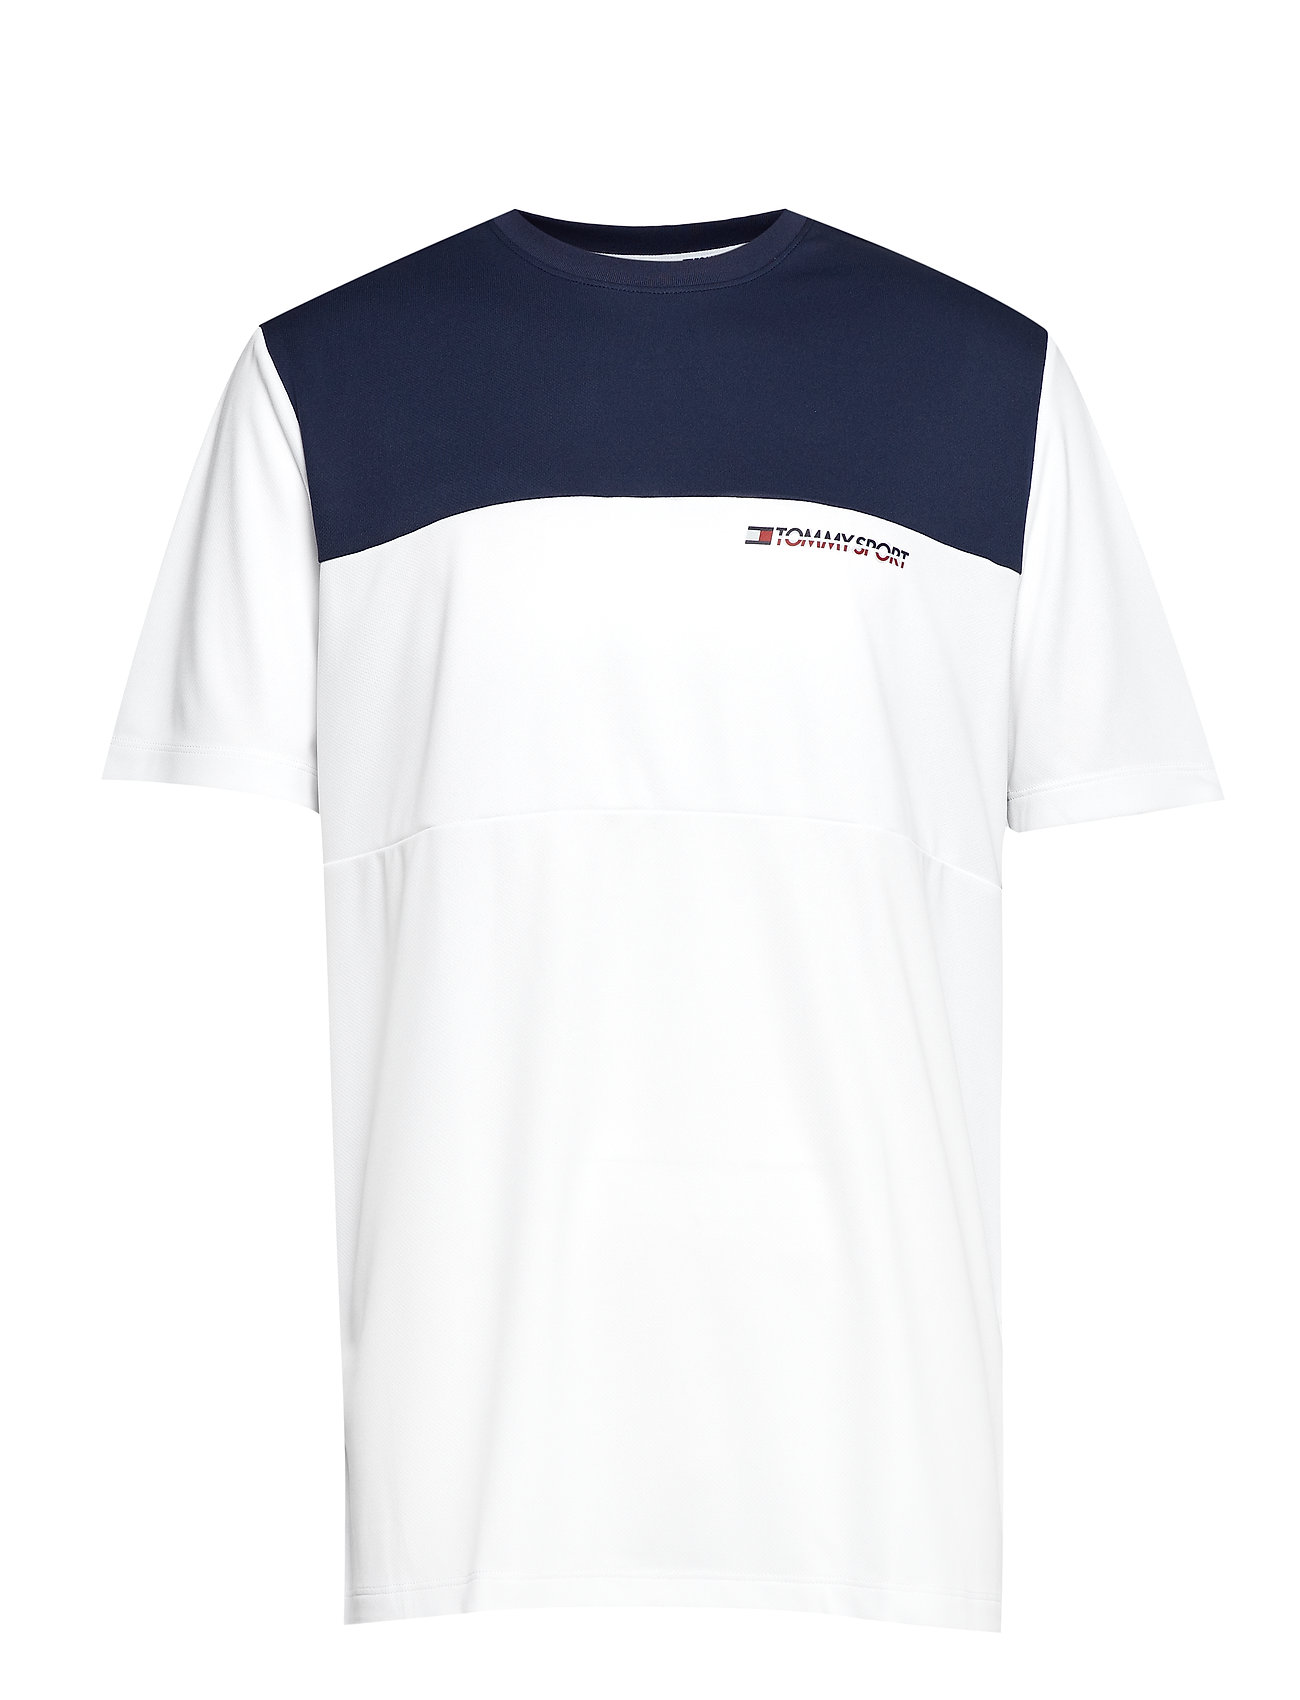 Tommy Sport COLOURBLOCK LOGO TEE - PVH WHITE